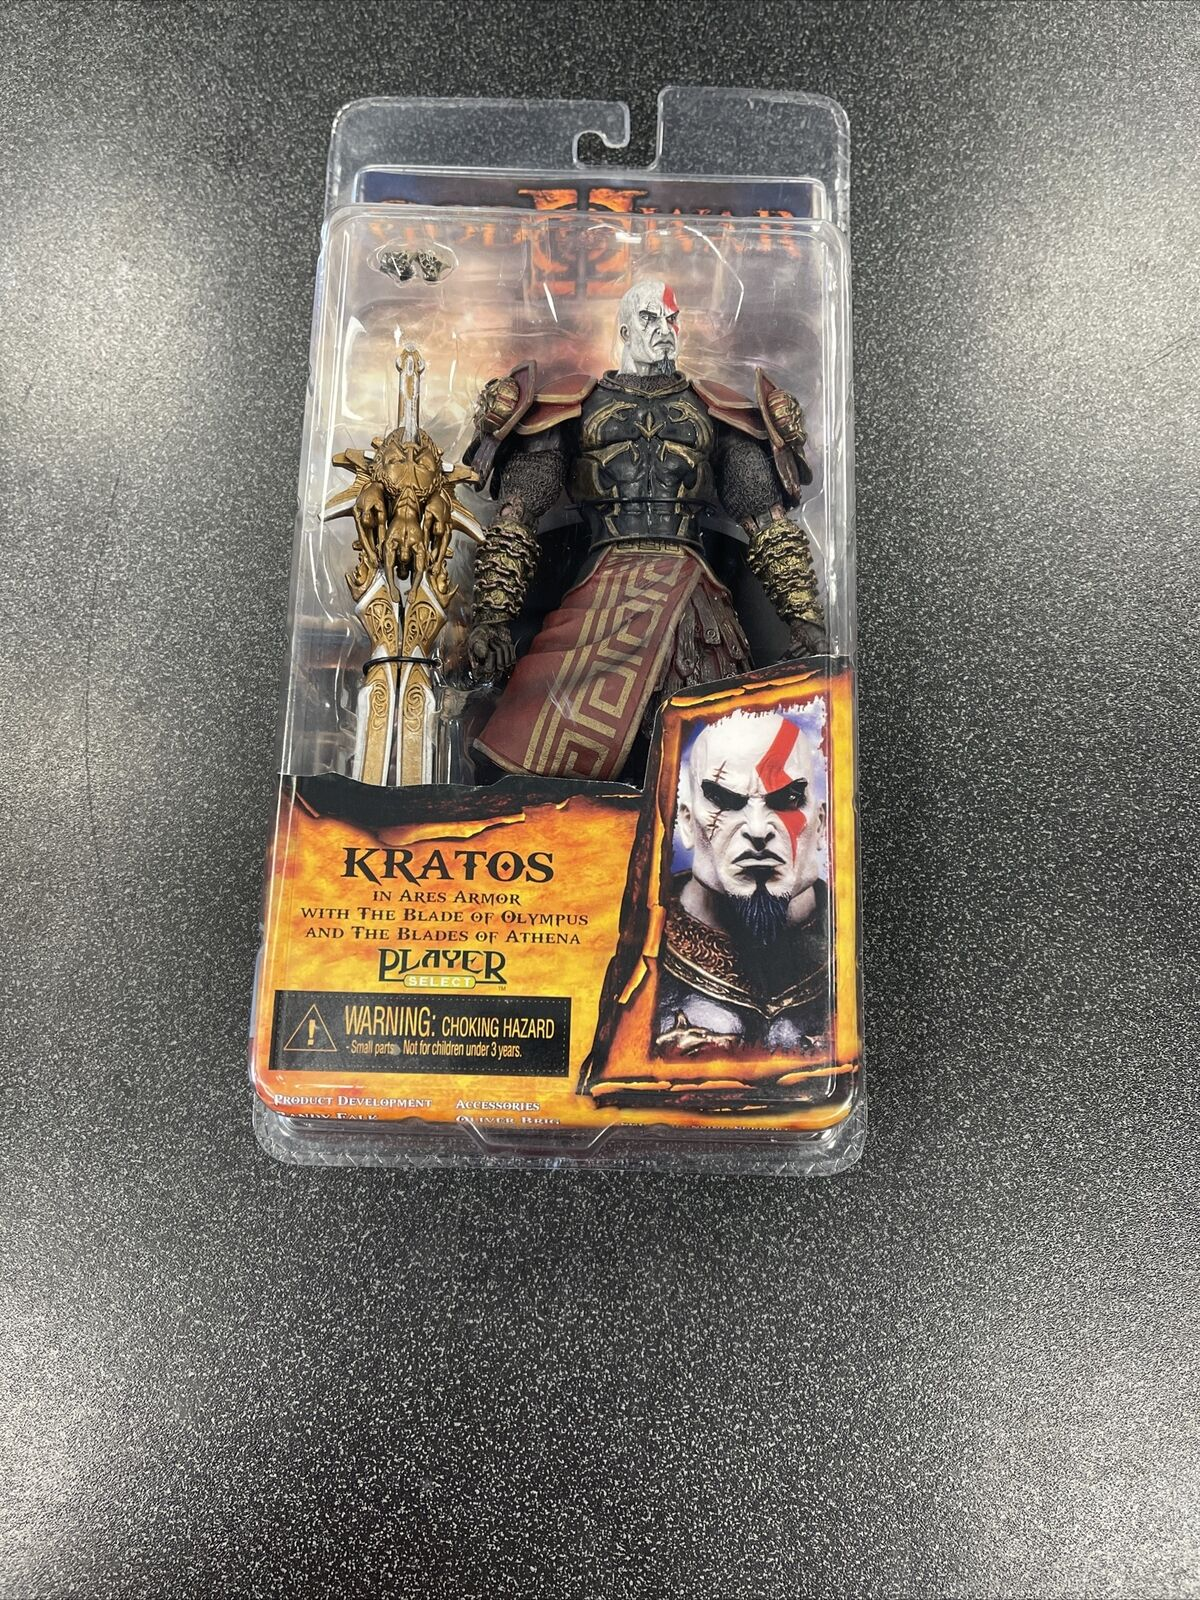 Neca God Of War 2 Video Game Action Figures Series 1 Kratos With Ares Armor For Sale Online Ebay